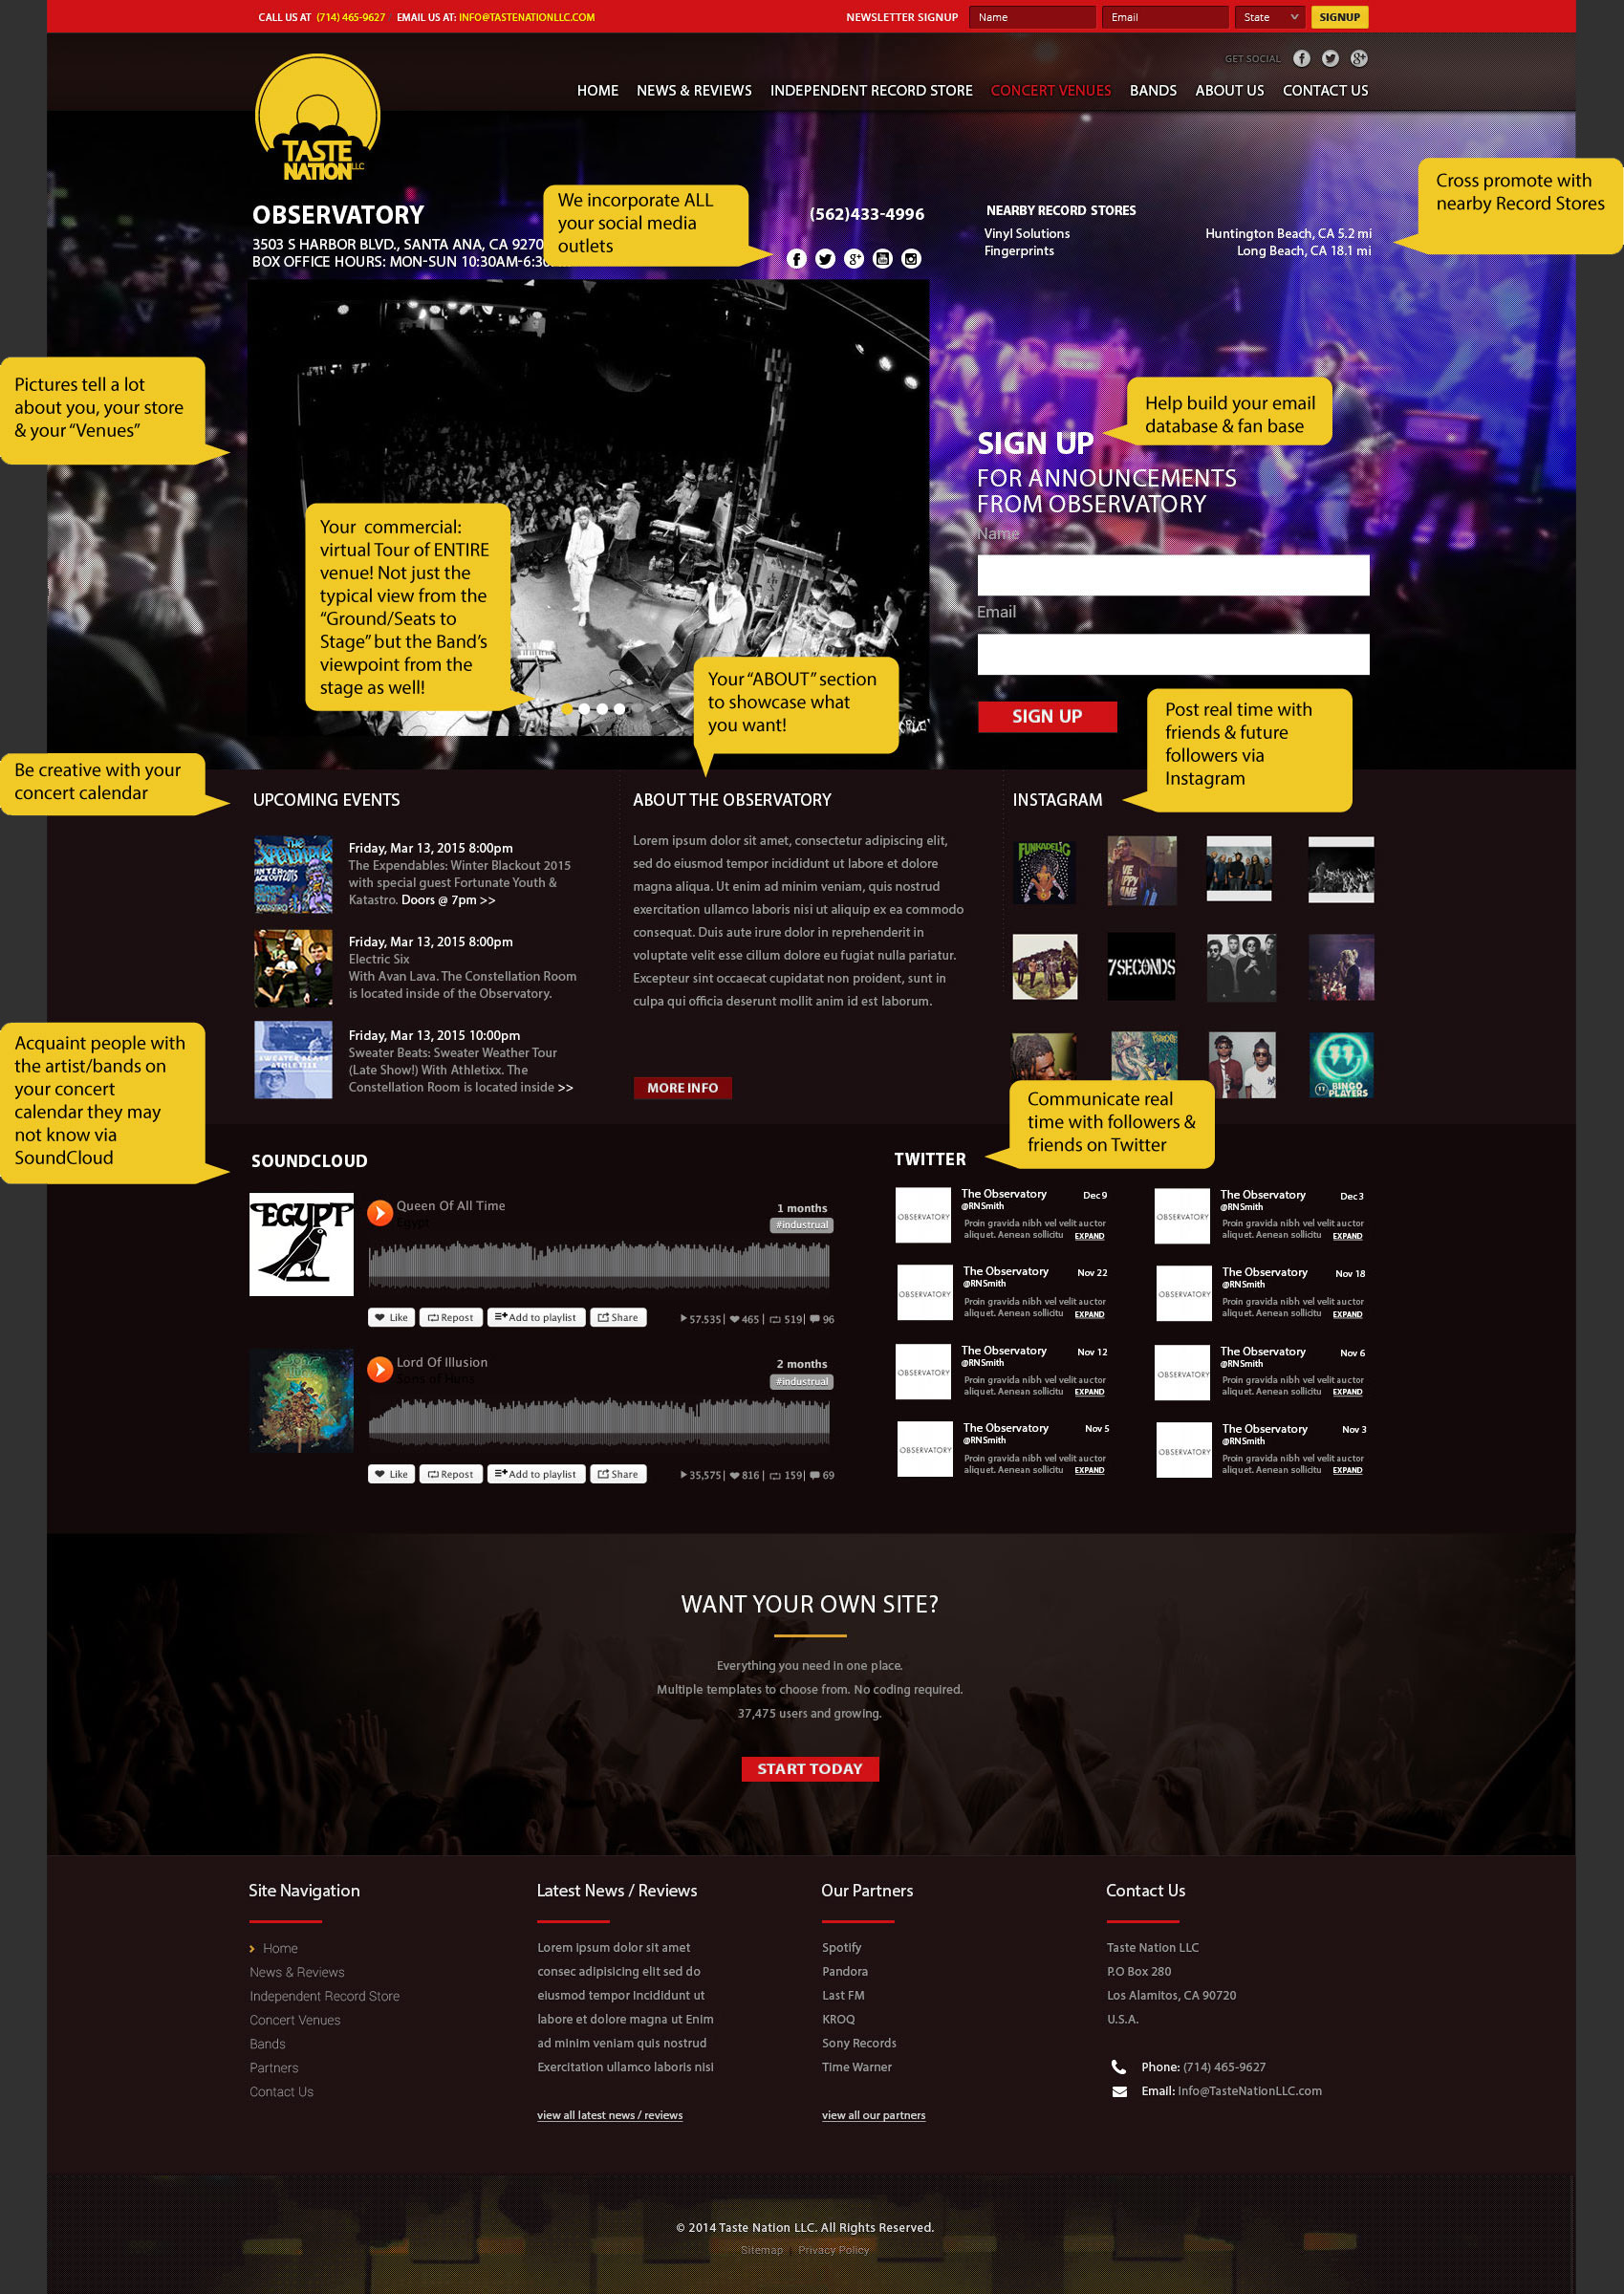 TasteNation-website-Venue-BOXES_Yellow_5_4_2015